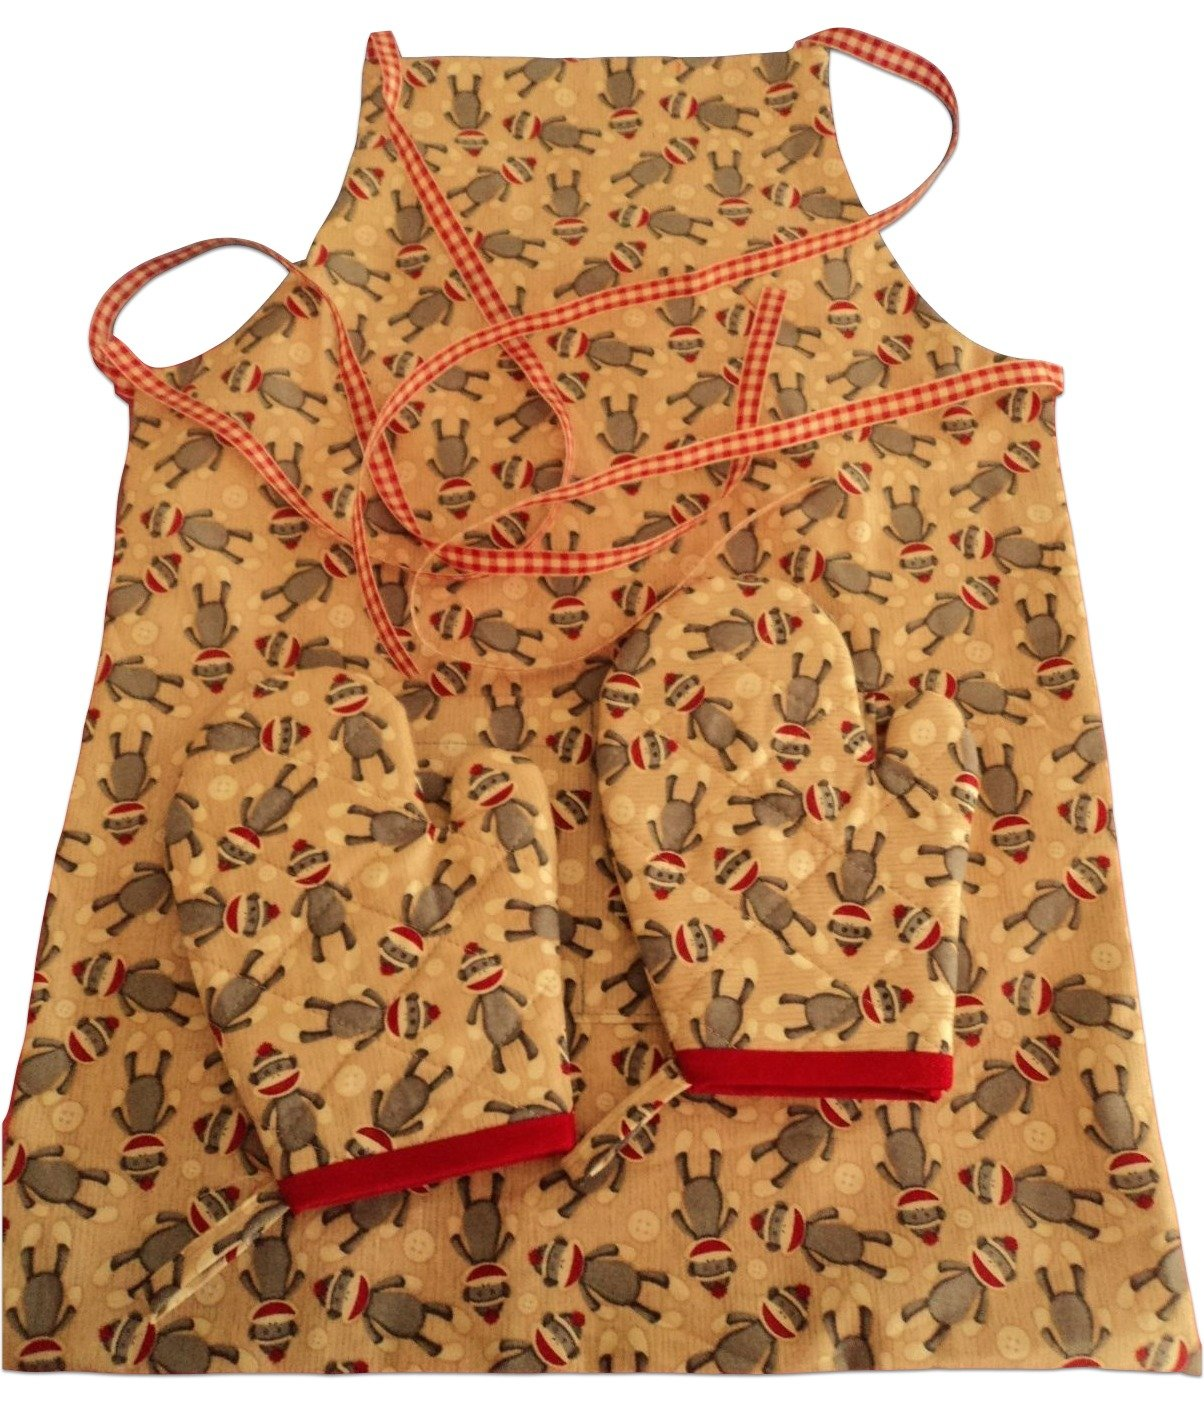 "Custom & Durable {8"" x 4"" Inch Each} 2 Set Pack of Mid Size ""Non-Slip"" Oven Mitts Made of Cotton for Carrying Hot Dishes w/ Children Sock Monkey Style [Tan, Red, & Grey] w/ Matching Apron"